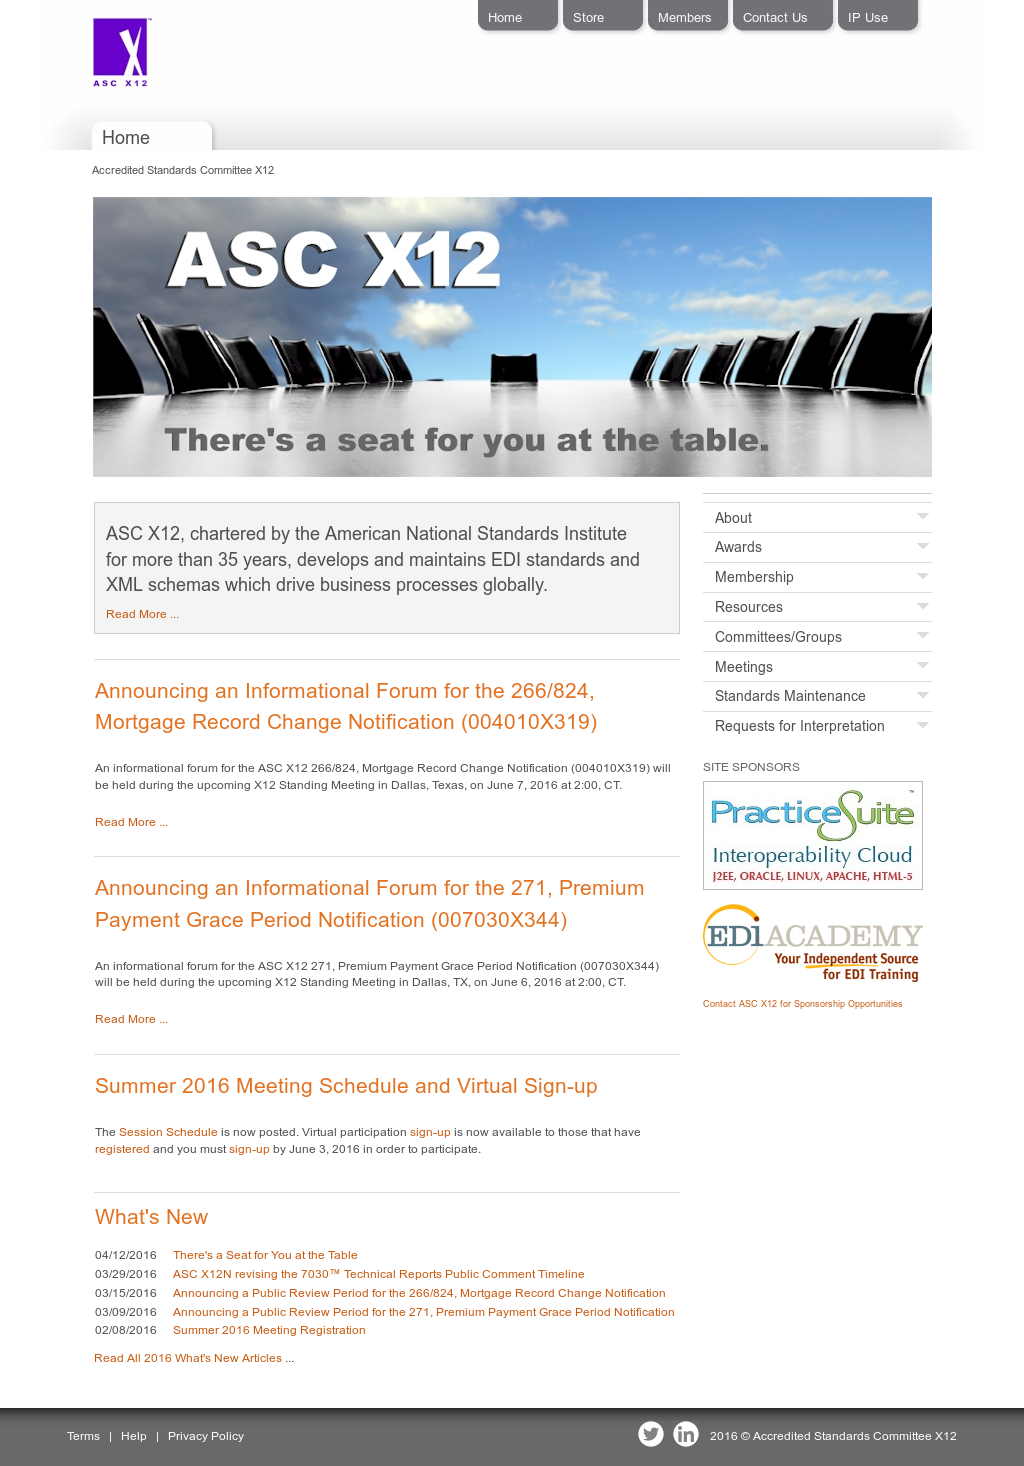 ASC X12 Competitors, Revenue and Employees - Owler Company